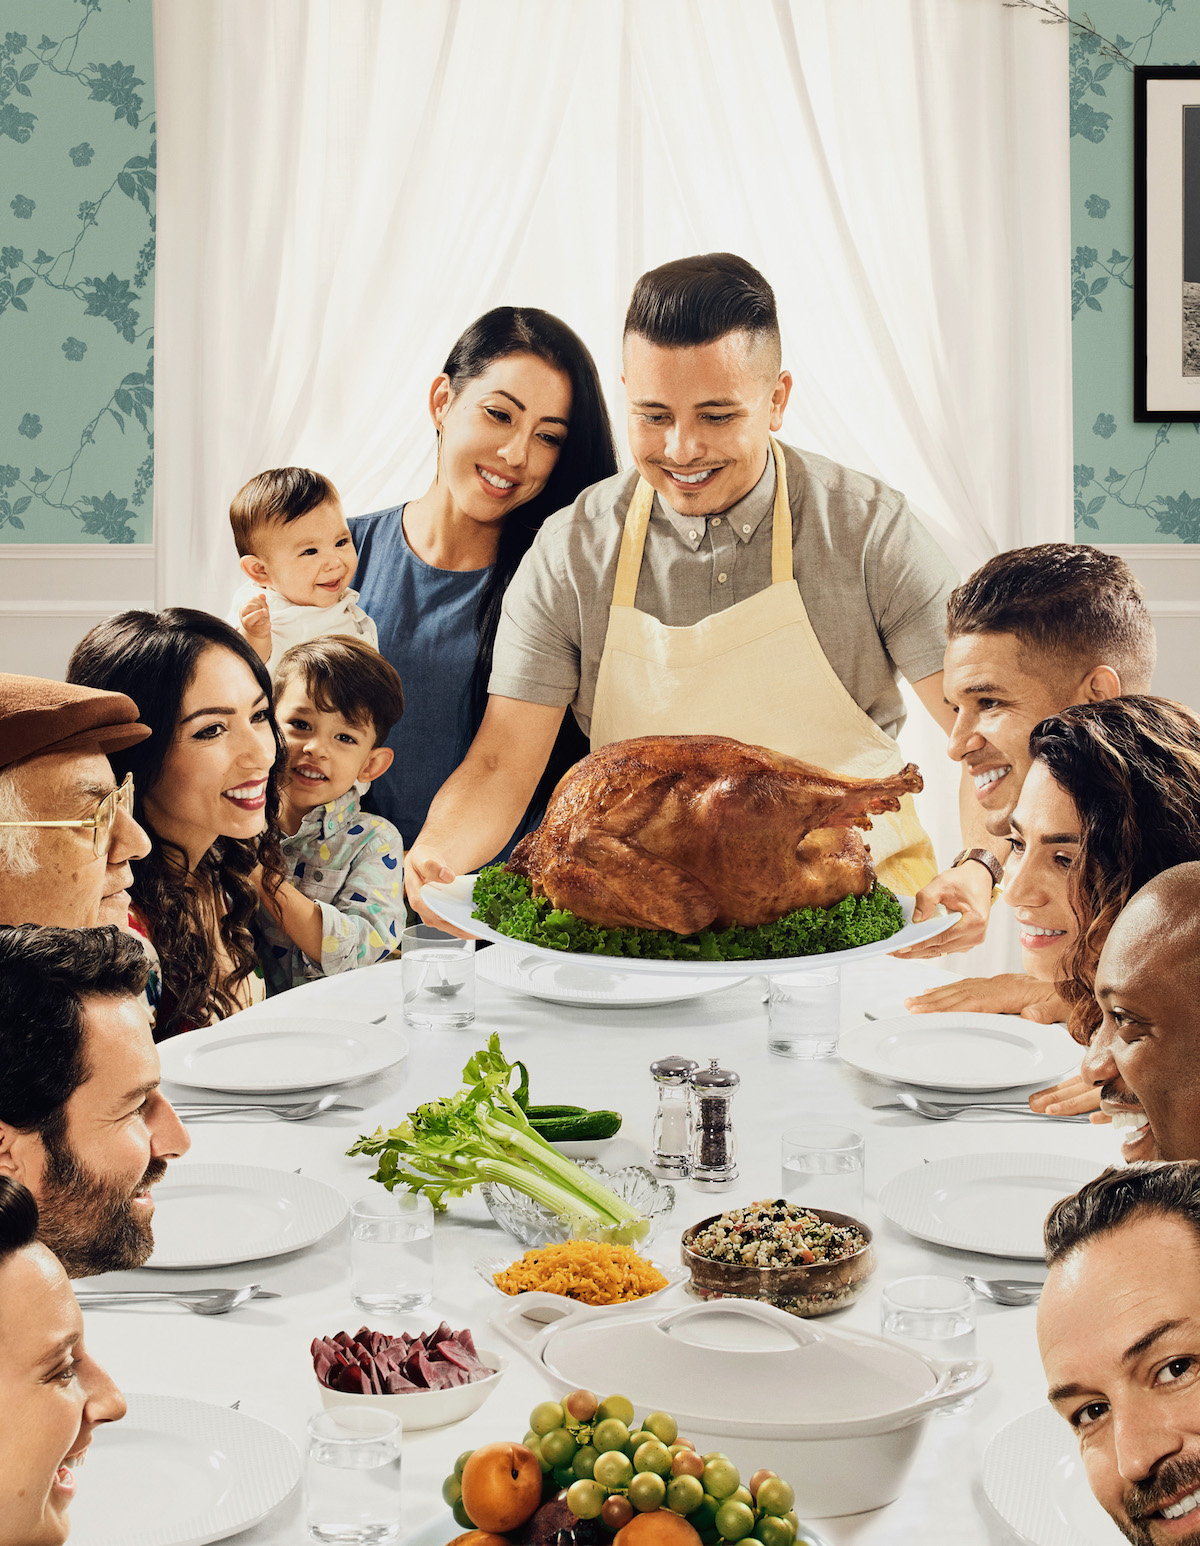 Norman Rockwell Family Meal | www.topsimages.com